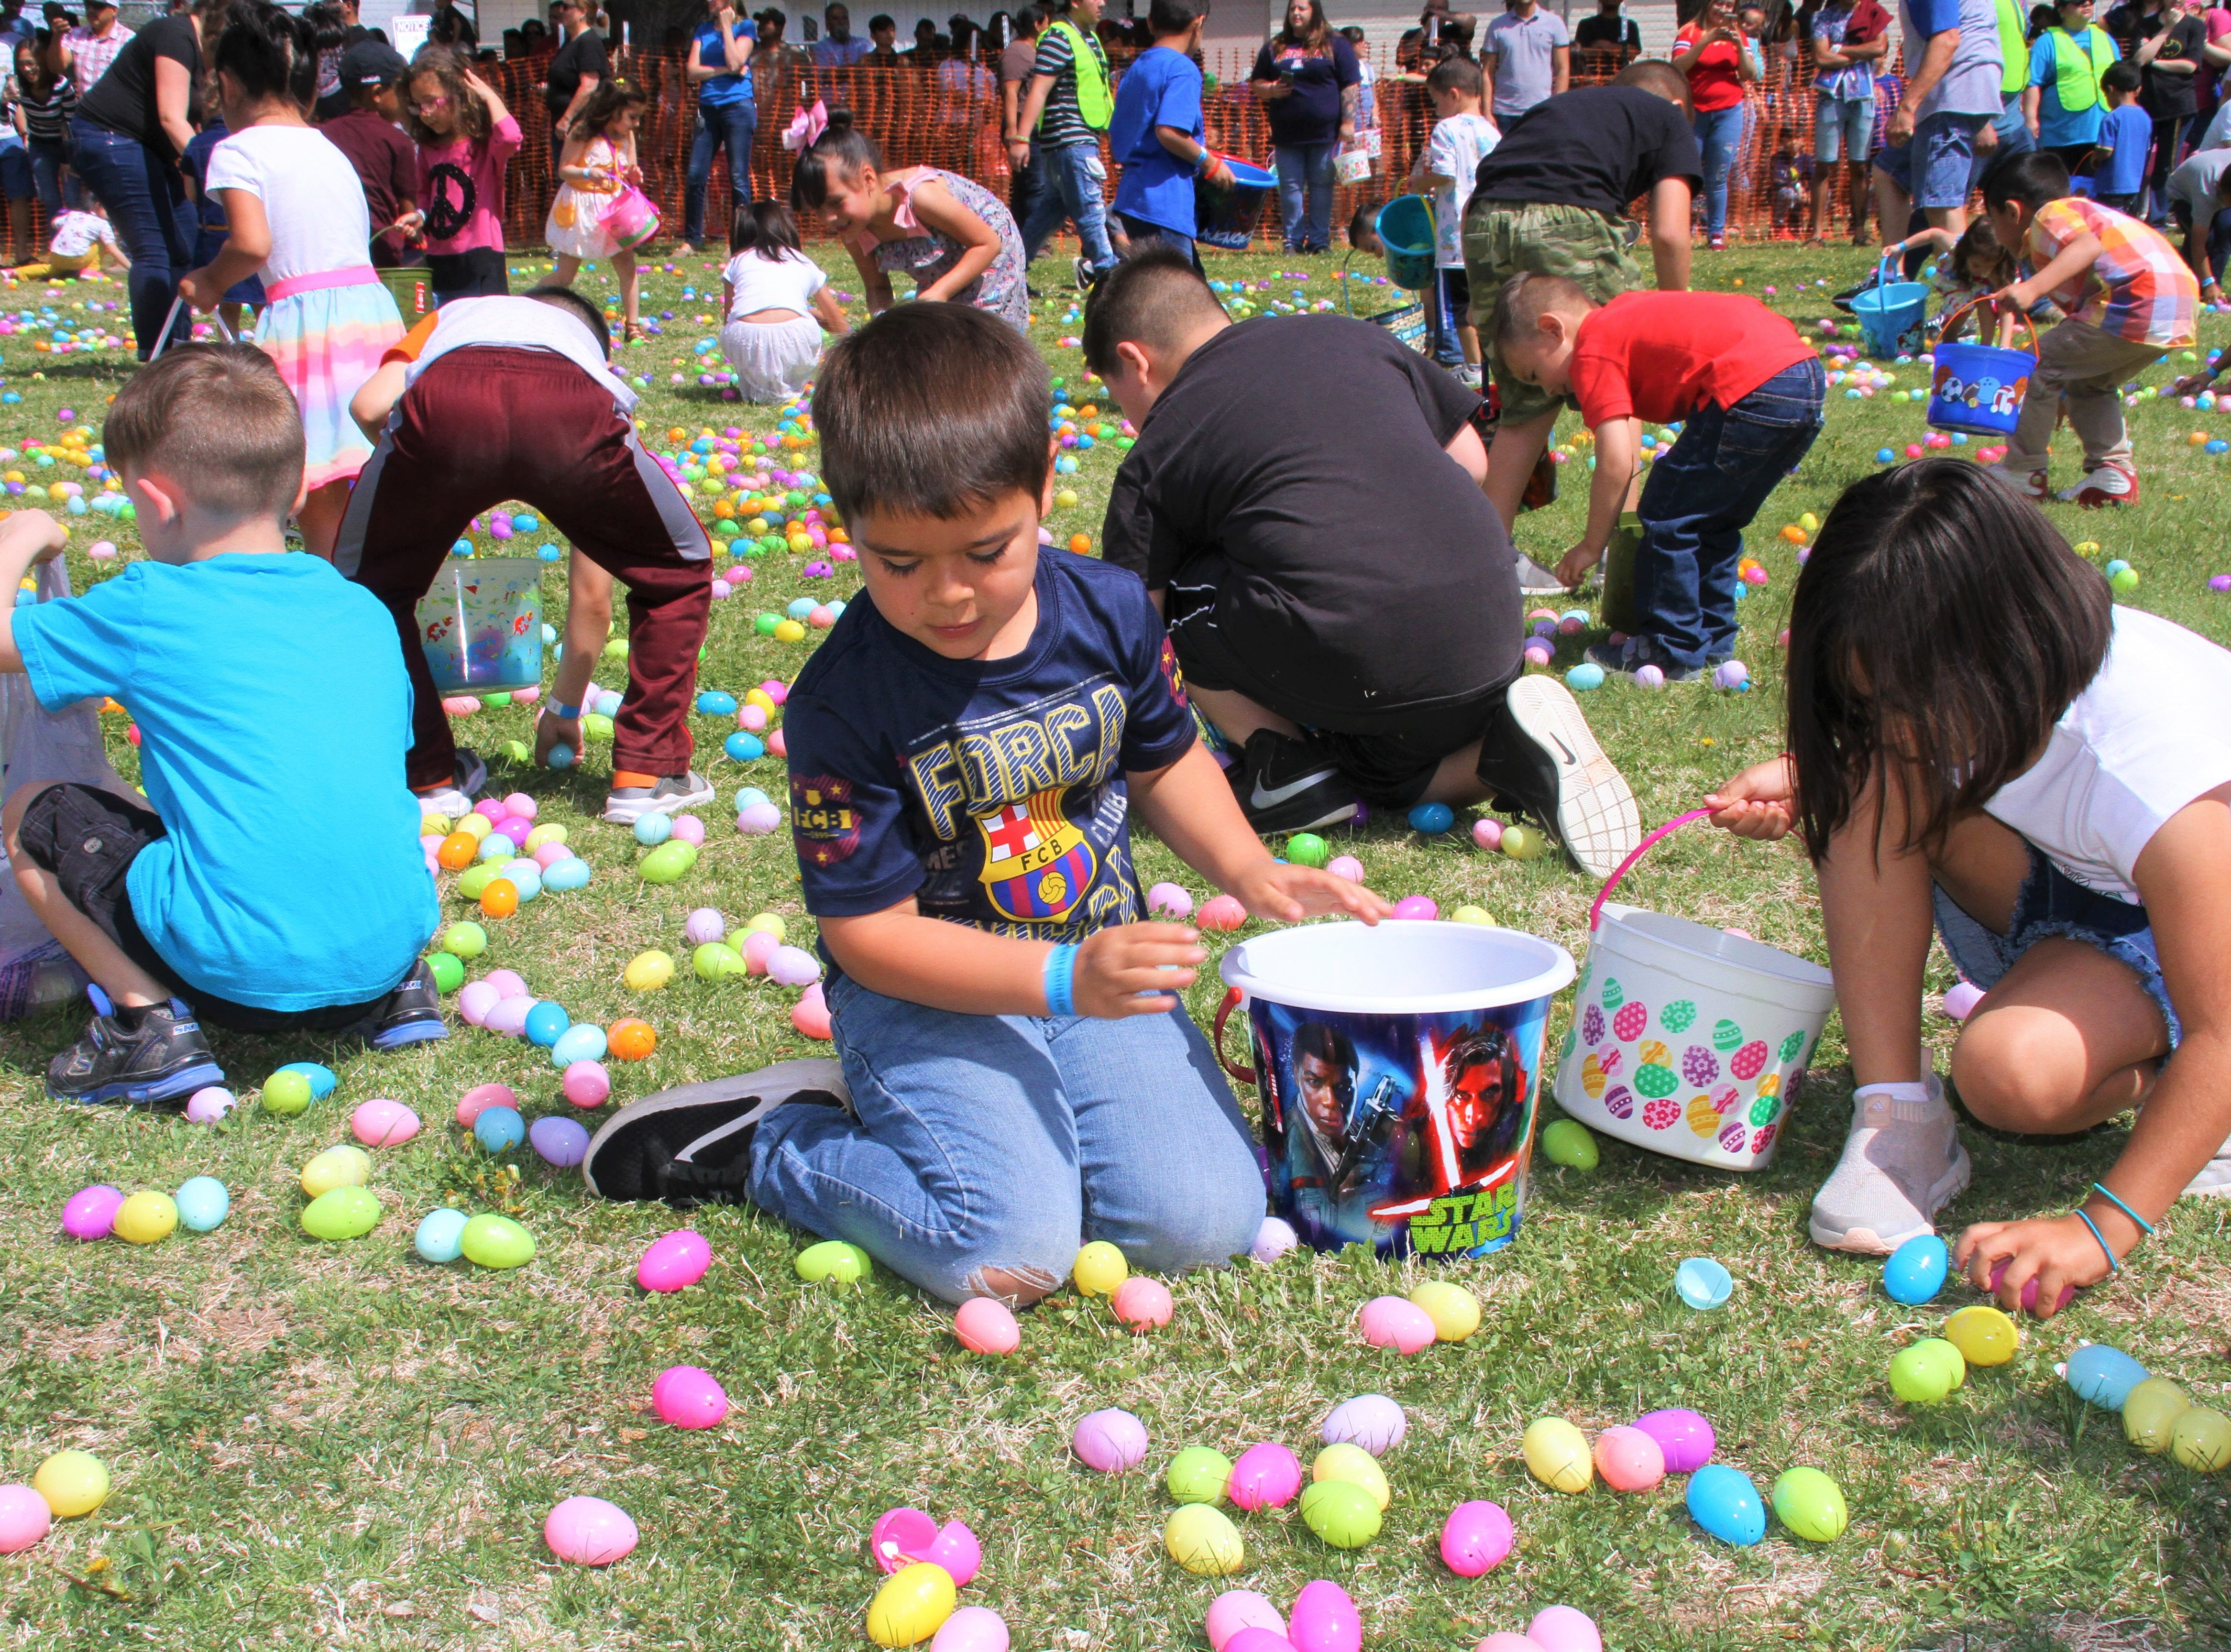 Age group 4 to 6 hunting eggs.